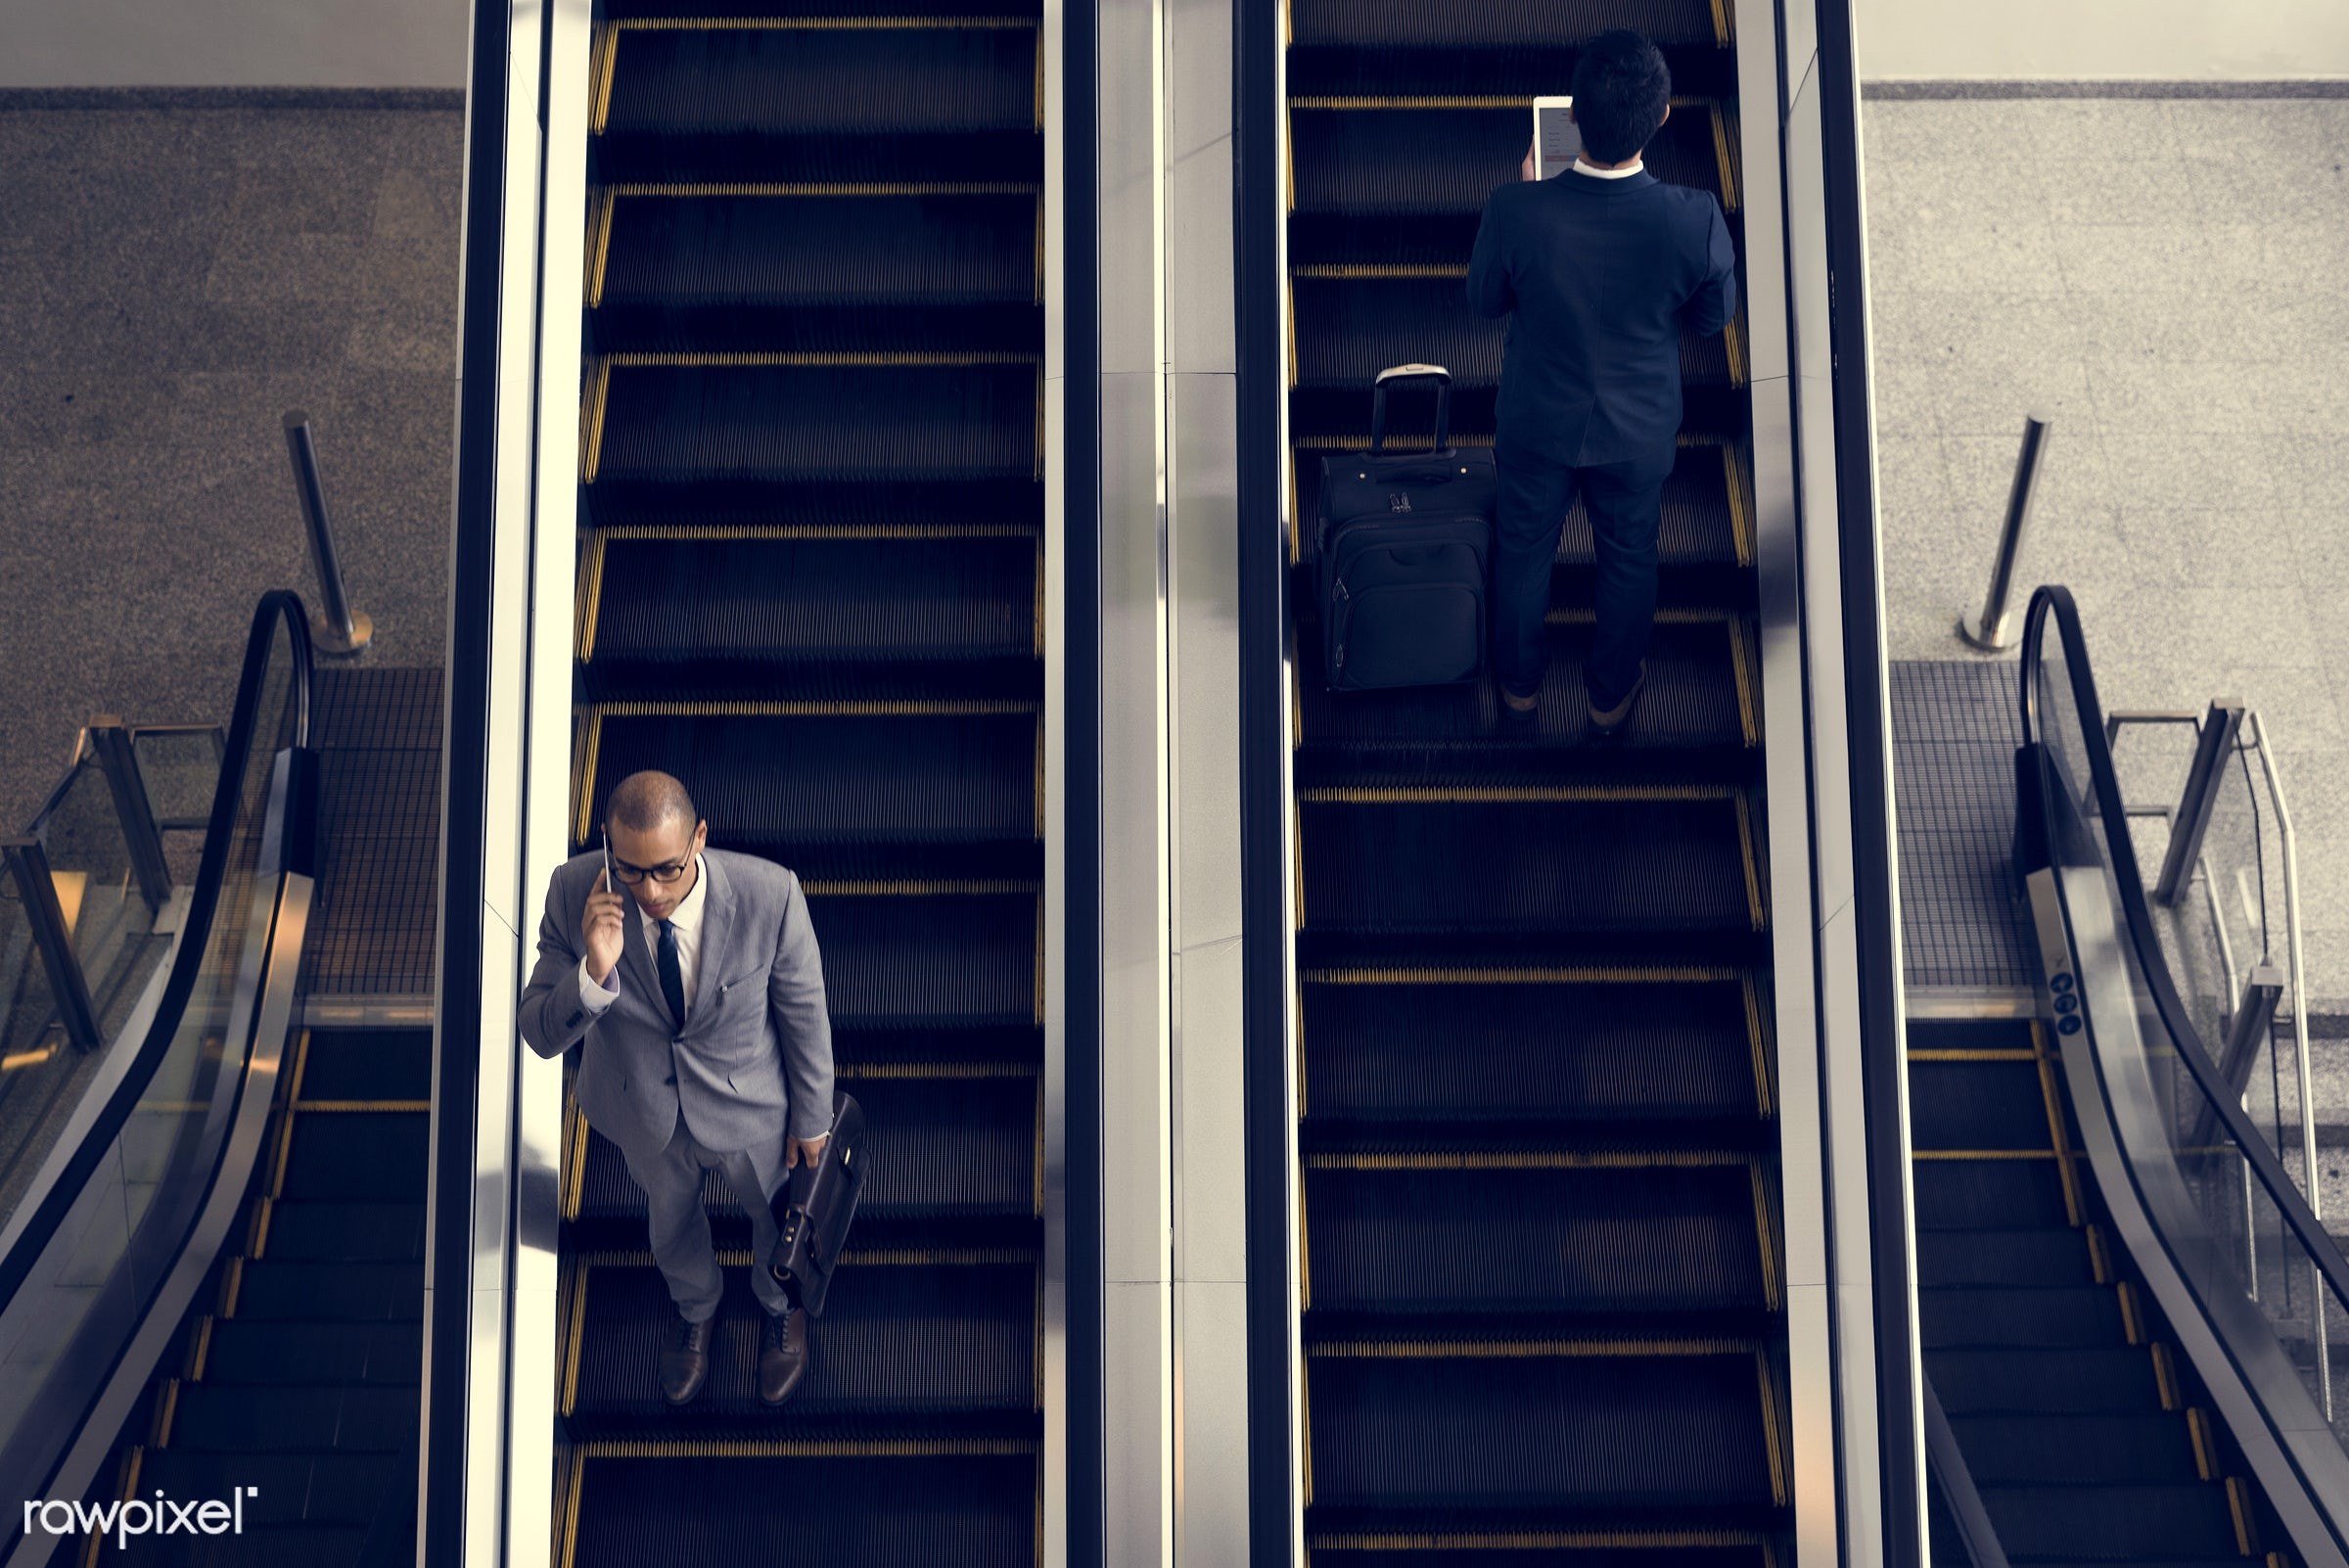 expression, call, face, person, phone, manager, suit and tie, diverse, white collar worker, people, business, asian,...